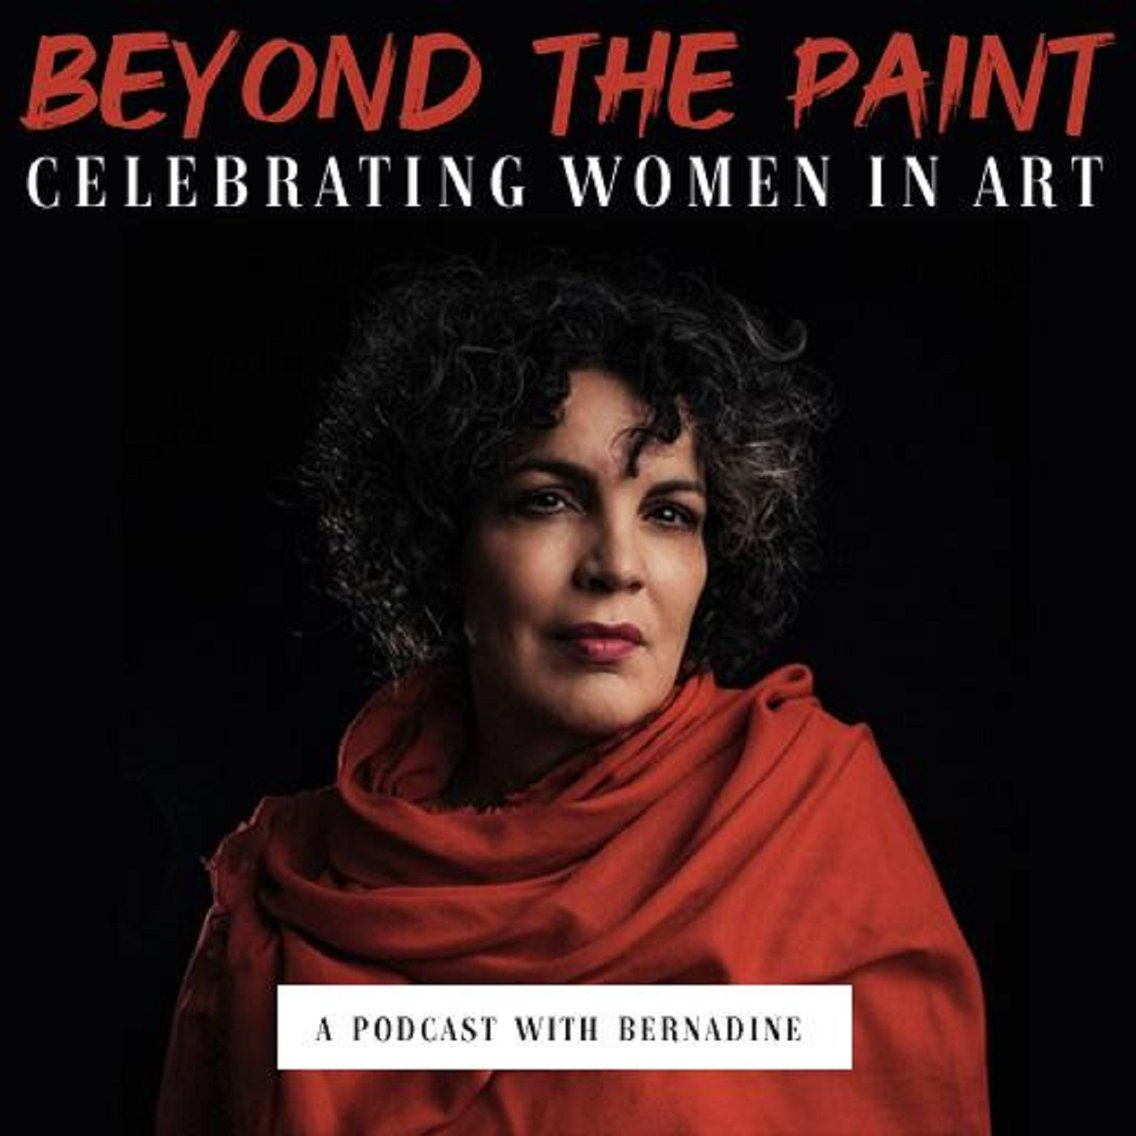 Beyond the Paint with Bernadine - Cover Image